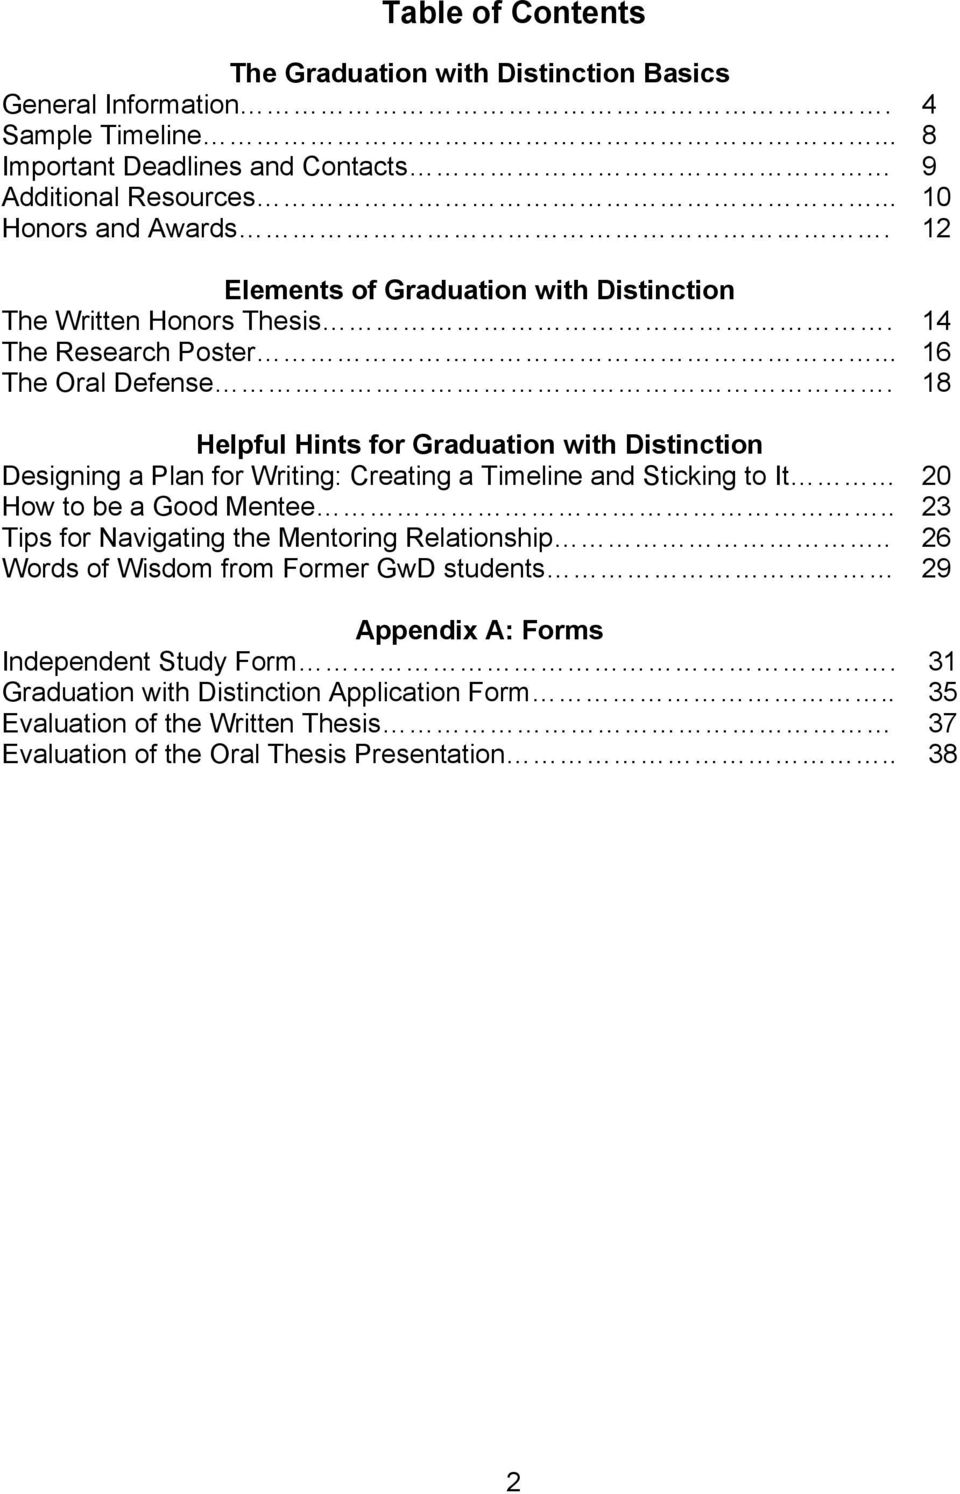 18 Helpful Hints for Graduation with Distinction Designing a Plan for Writing: Creating a Timeline and Sticking to It 20 How to be a Good Mentee.